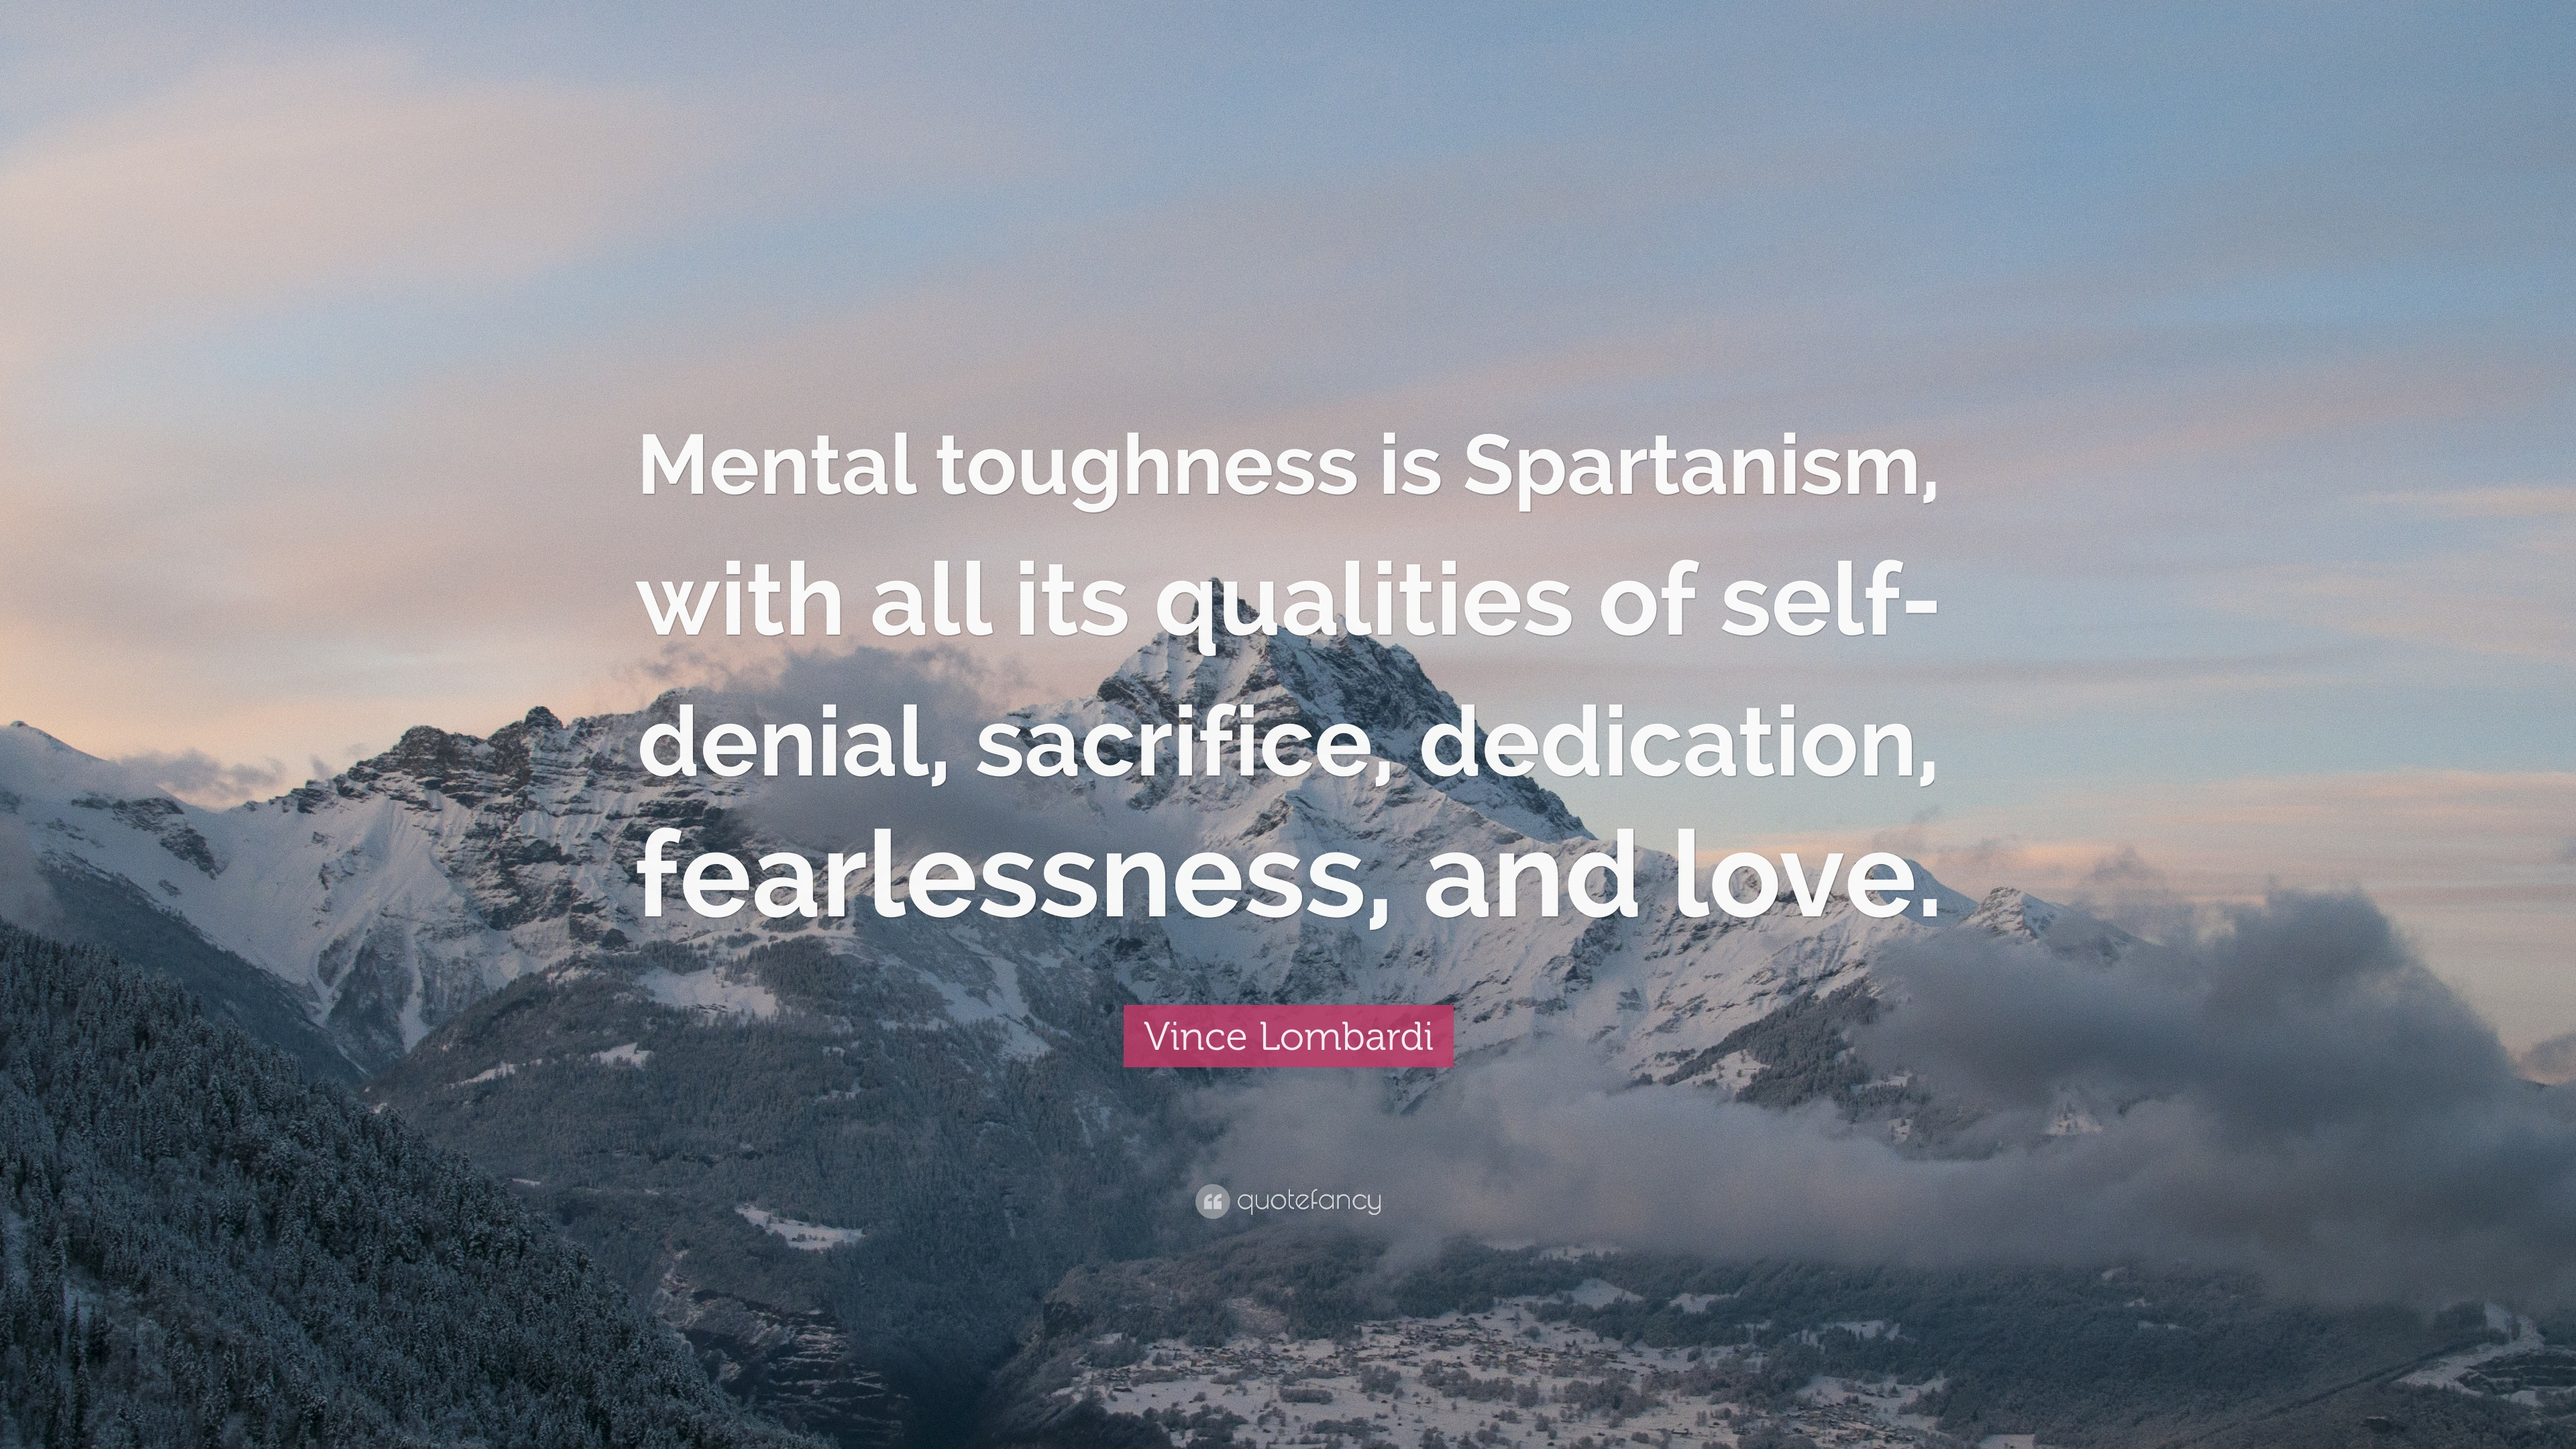 Mental Toughness Quotes | Vince Lombardi Quote Mental Toughness Is Spartanism With All Its